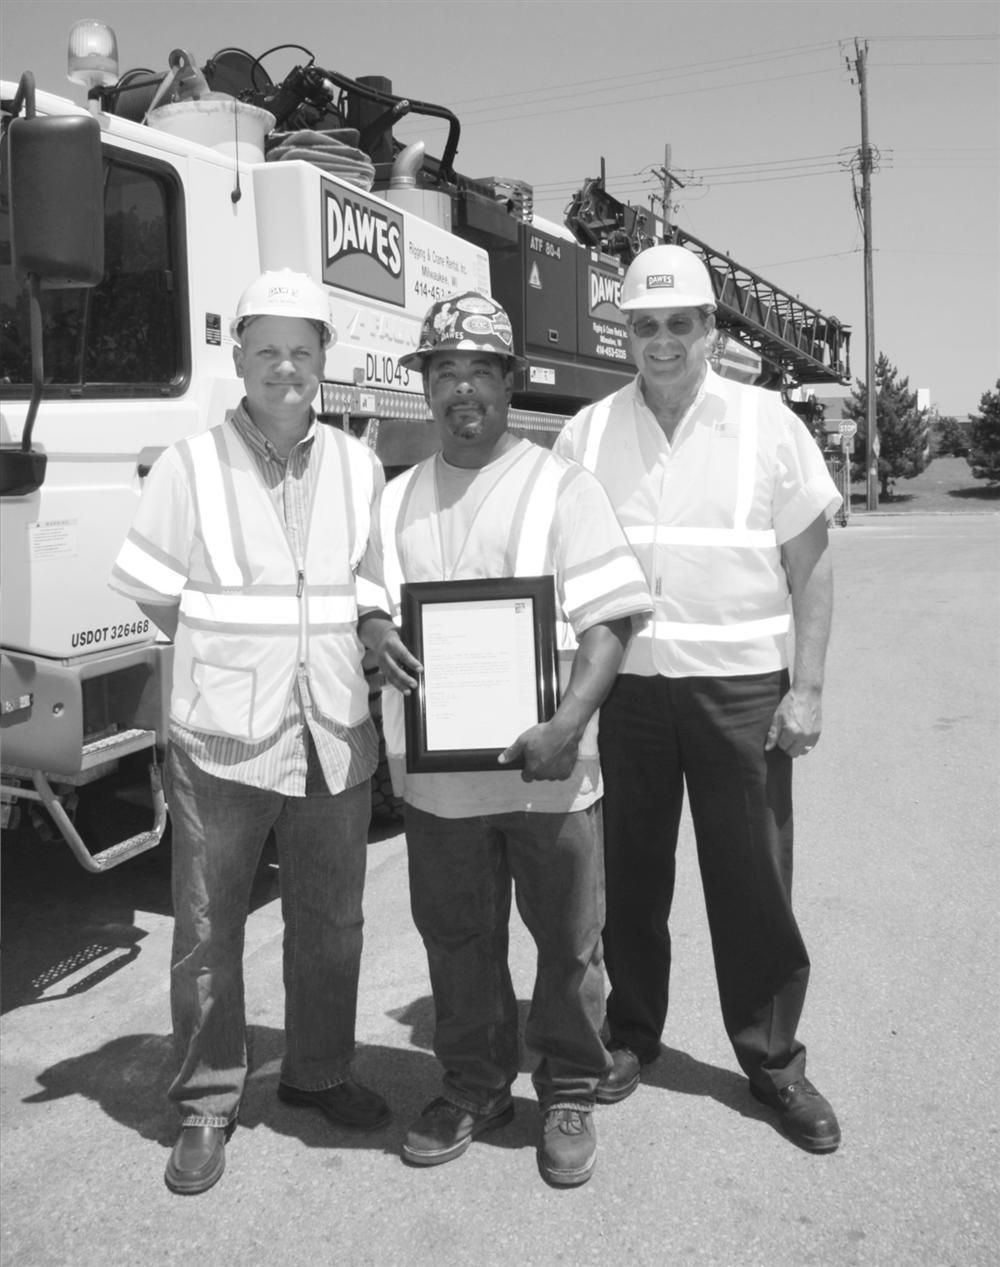 Operator Curtis Smith (C) with Pete Nowak (L) and Rick Peters, safety managers.